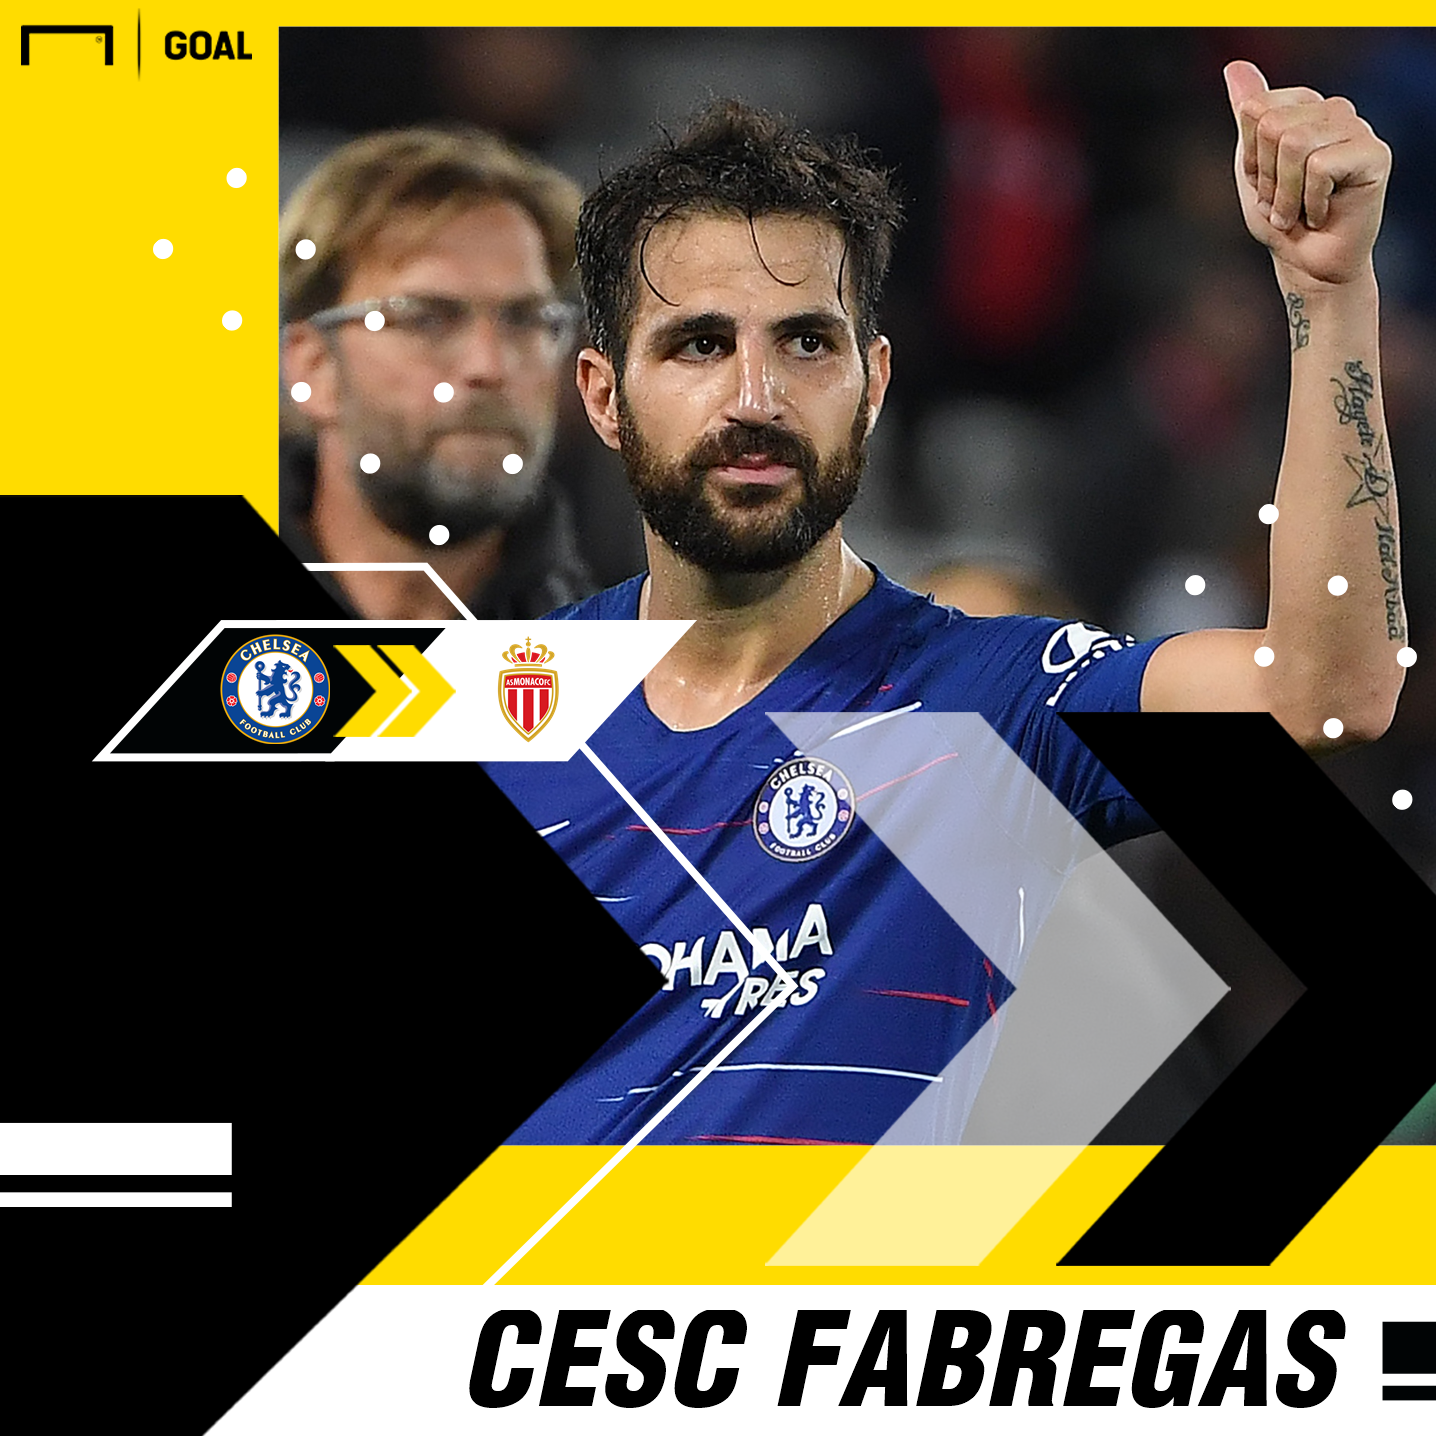 Fabregas leaves Chelsea for Ligue 1 strugglers Monaco